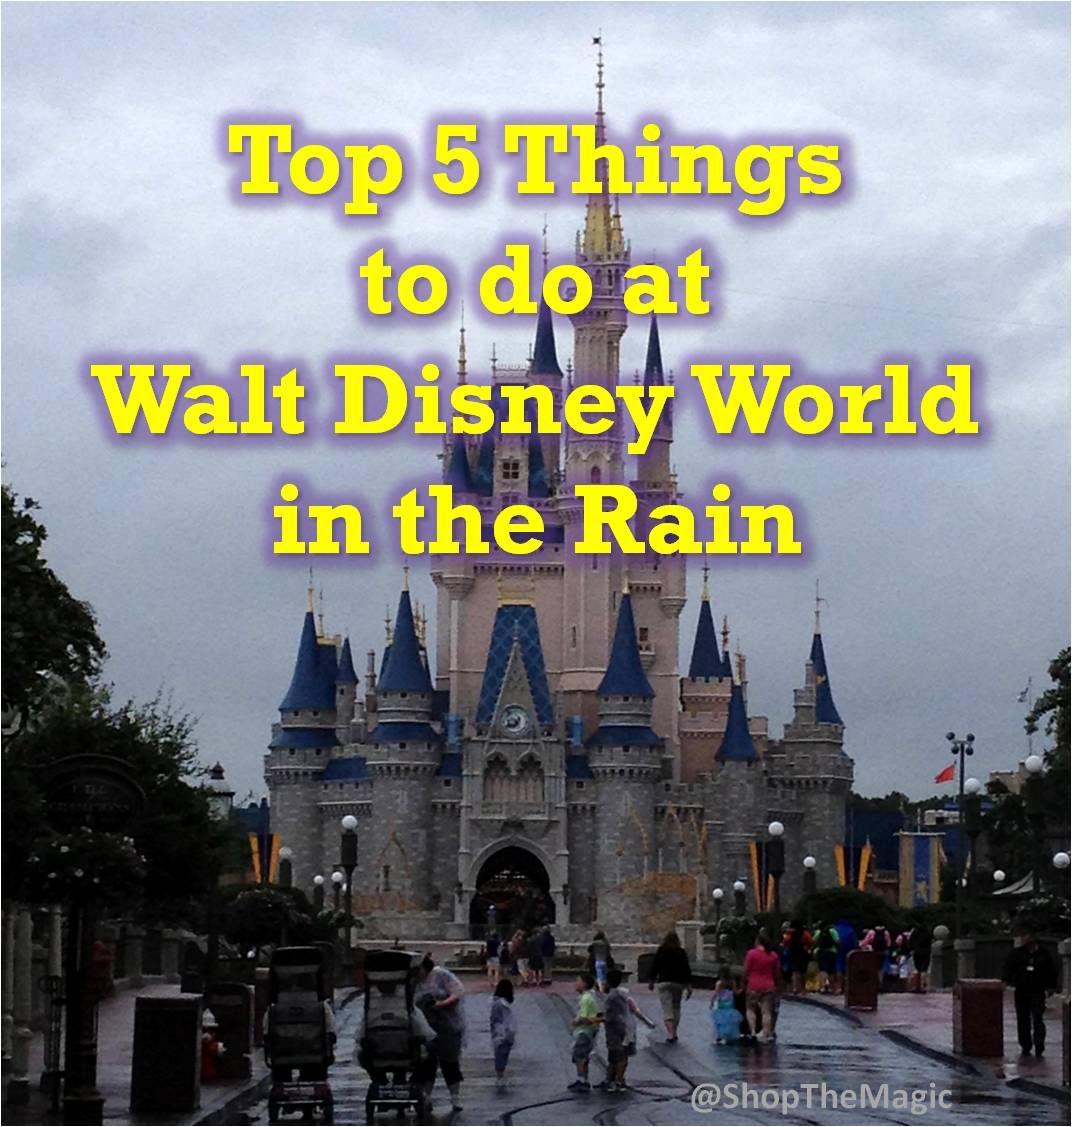 Top 5 Things to do at Walt Disney World in the Rain